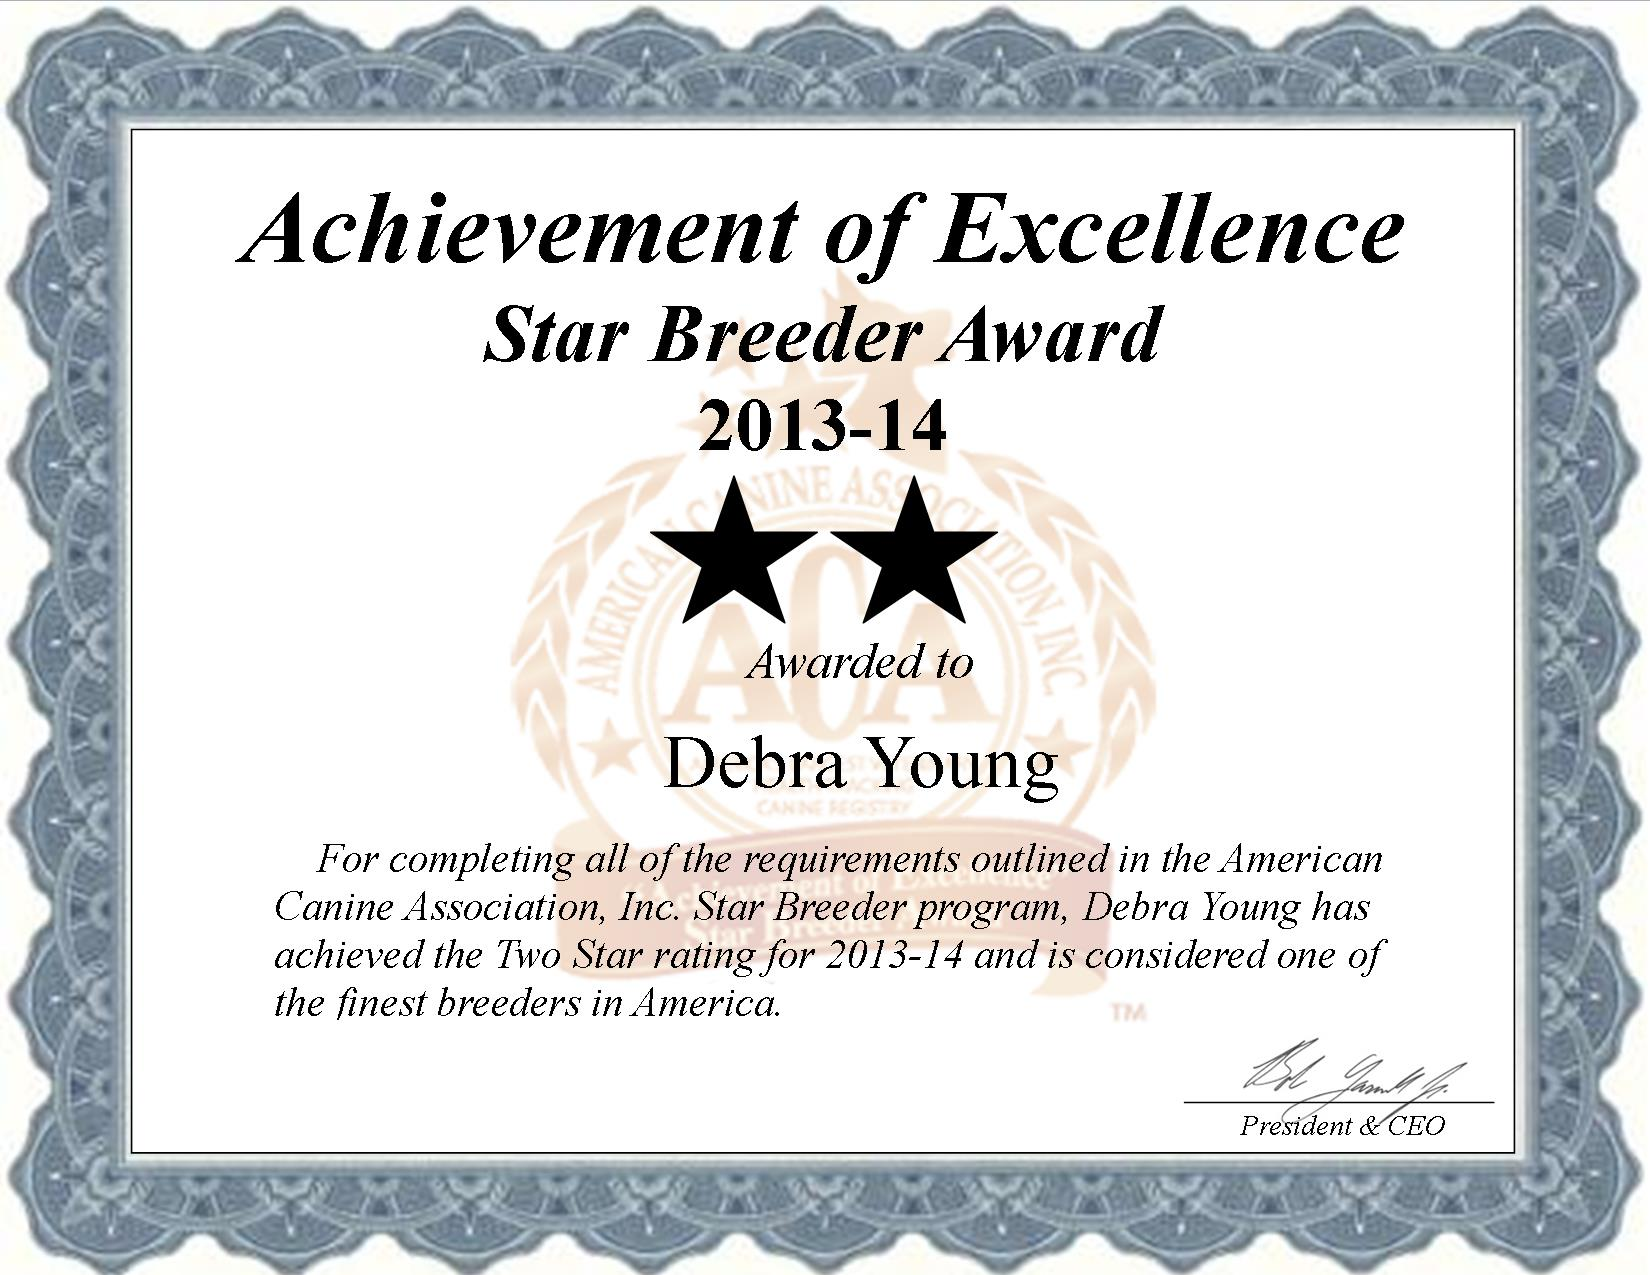 Debra Young, Young Kennel, Young dog breeder, star breeder, aca, star breeder, 2 star, Ashdown, Arkansas, AR, dog, puppy, puppies, dog breeder, dog breeders, Arkansas breeder, Debra Young dog breeder